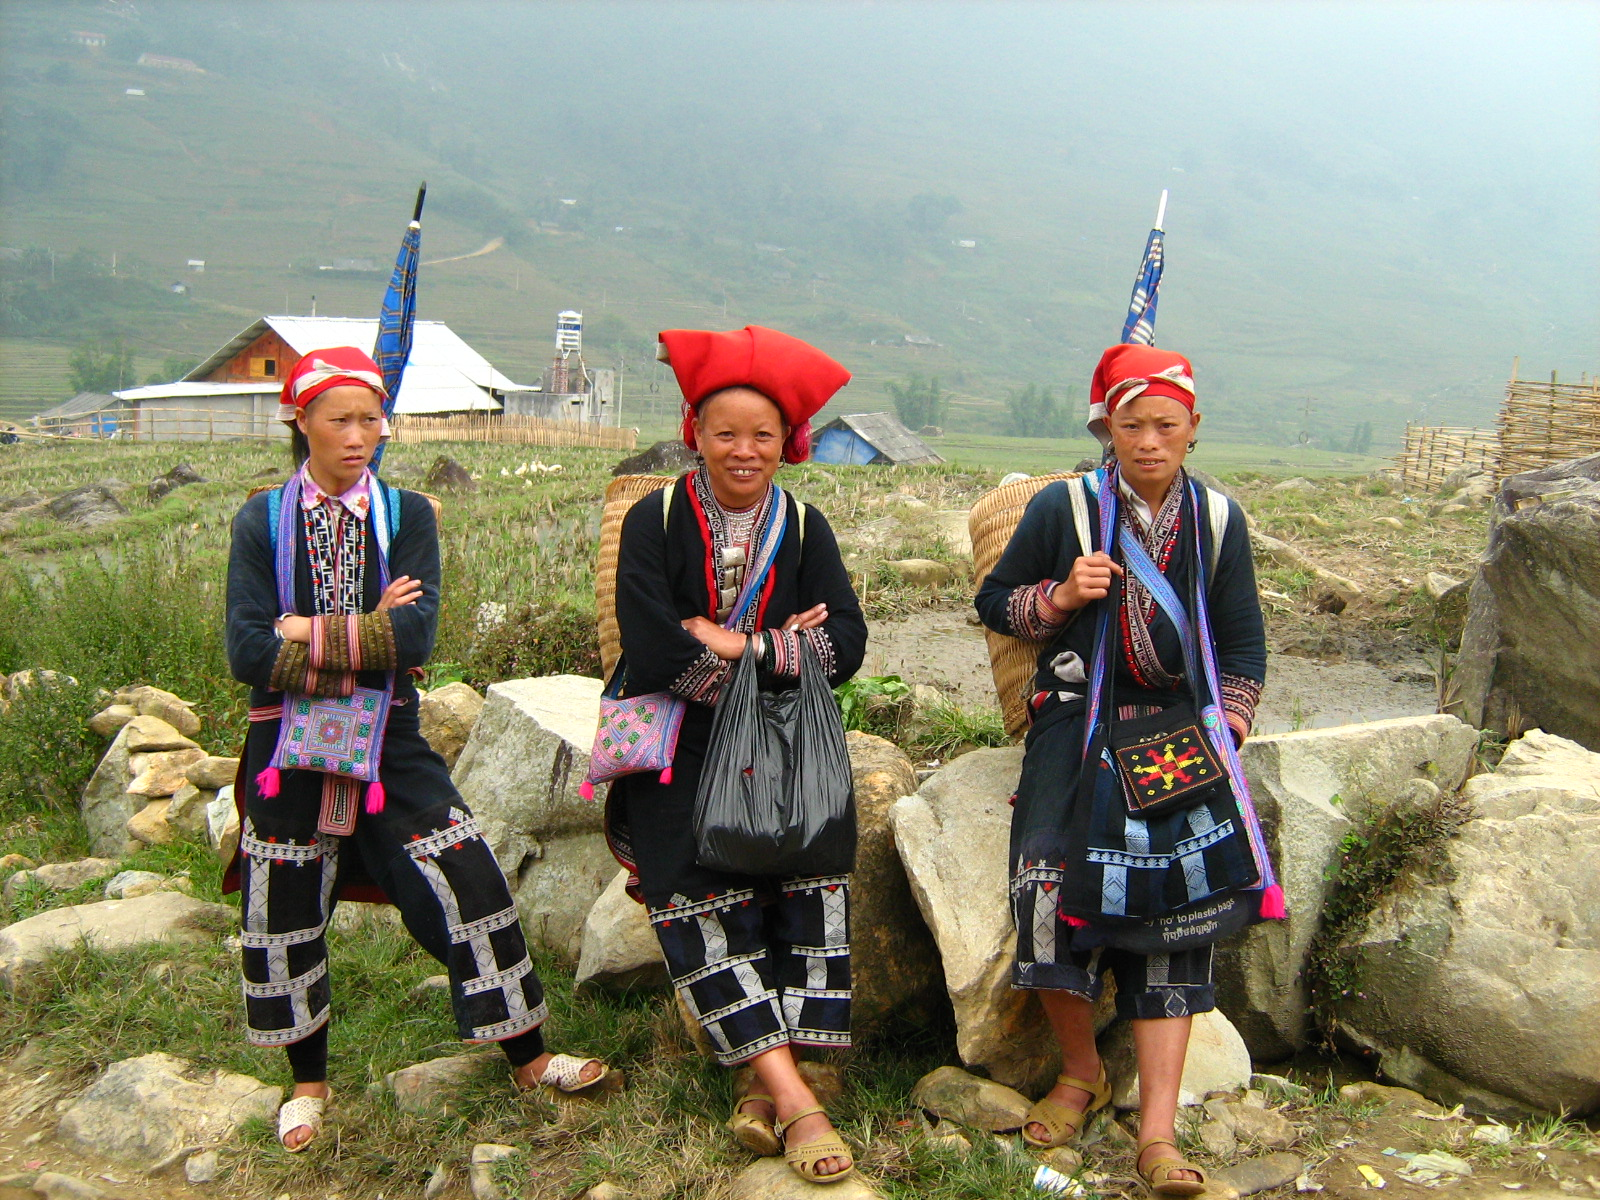 Rded hmong